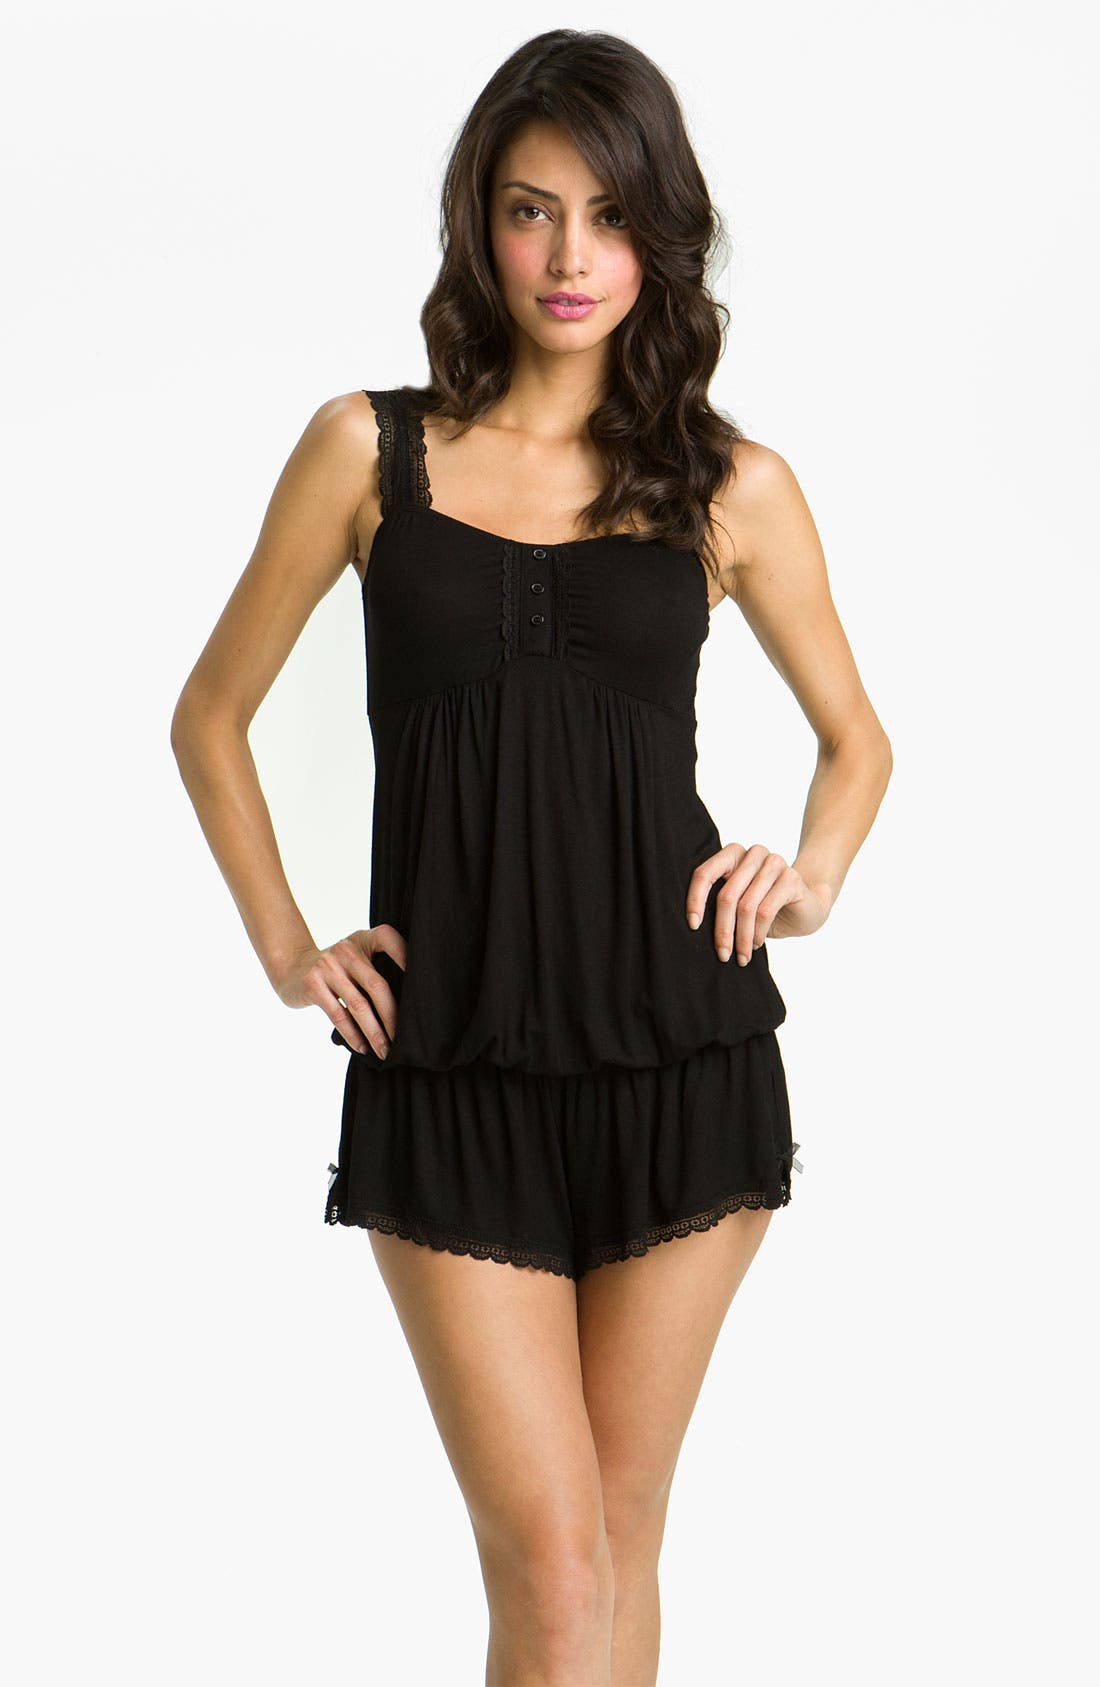 Alternate Image 1 Selected - Honeydew Intimates 'Essential Bliss' Romper